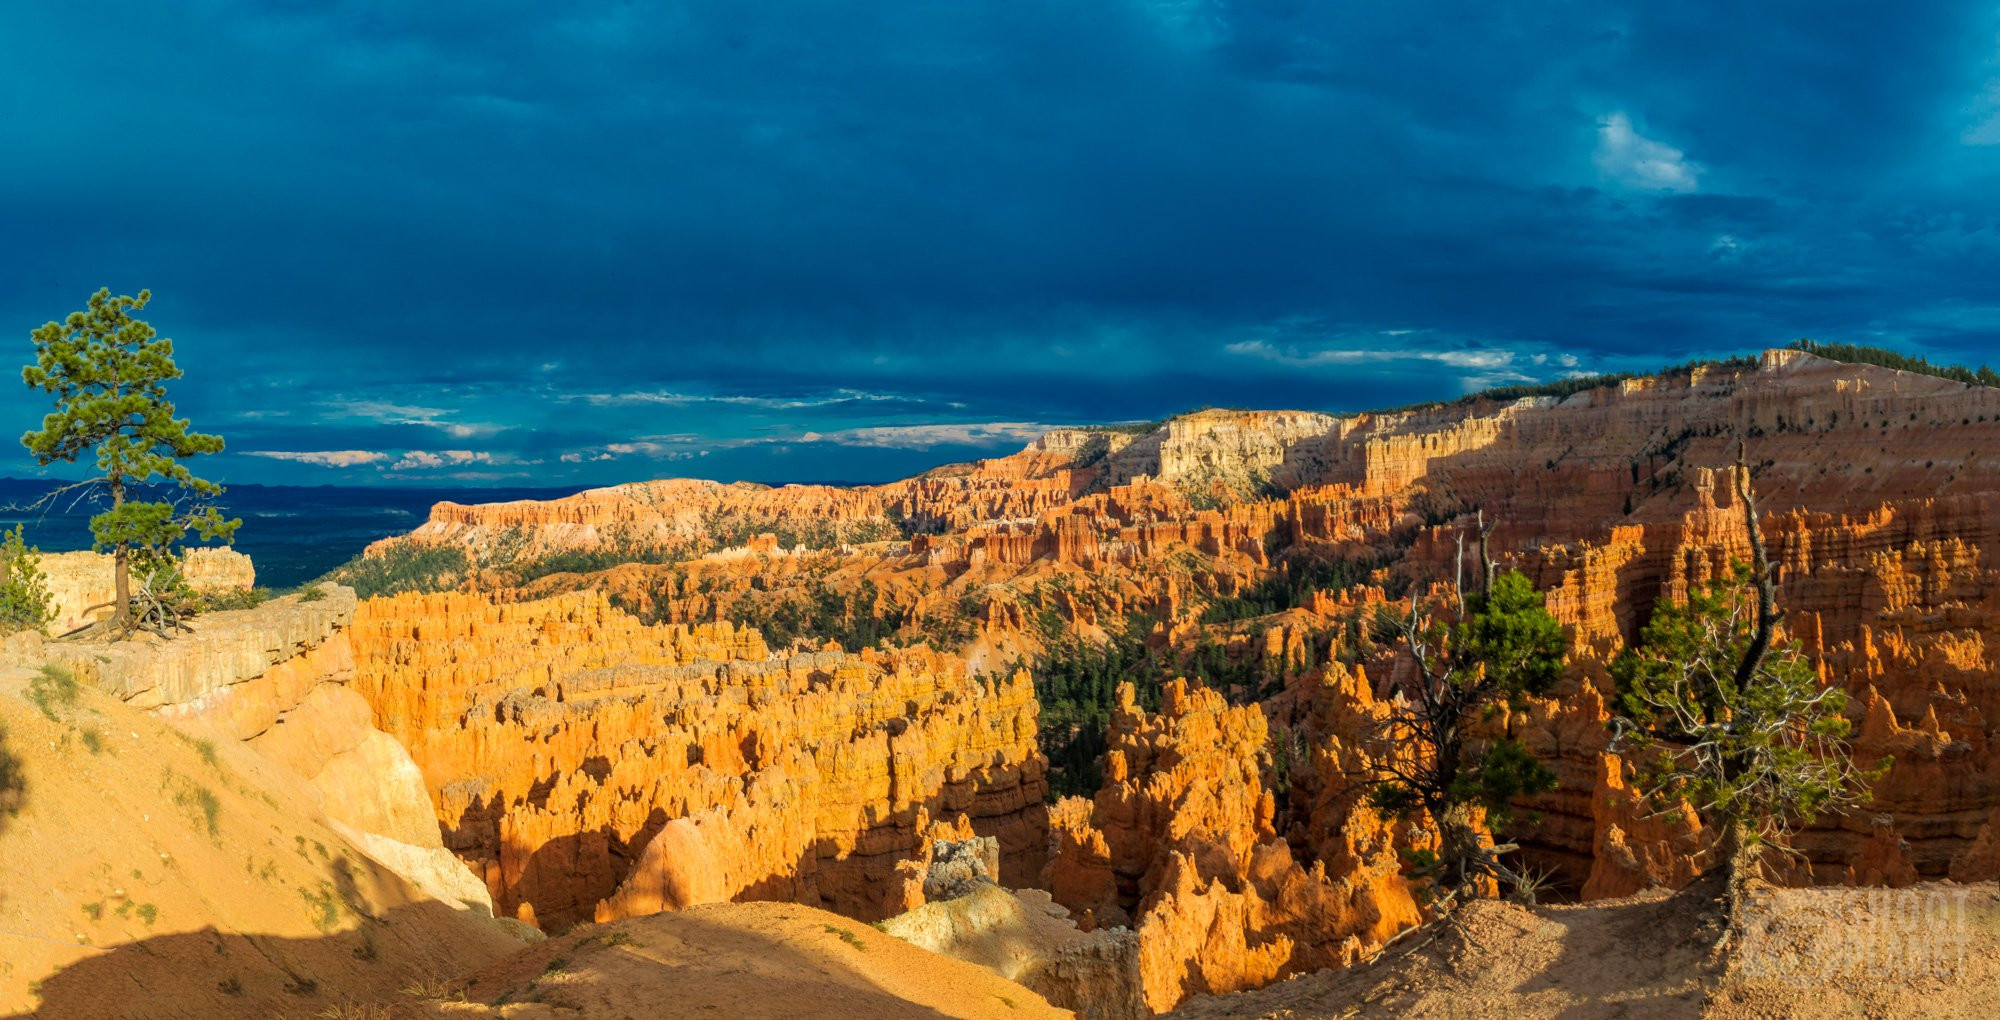 Sunset from sunset point, Brice canyon, USA